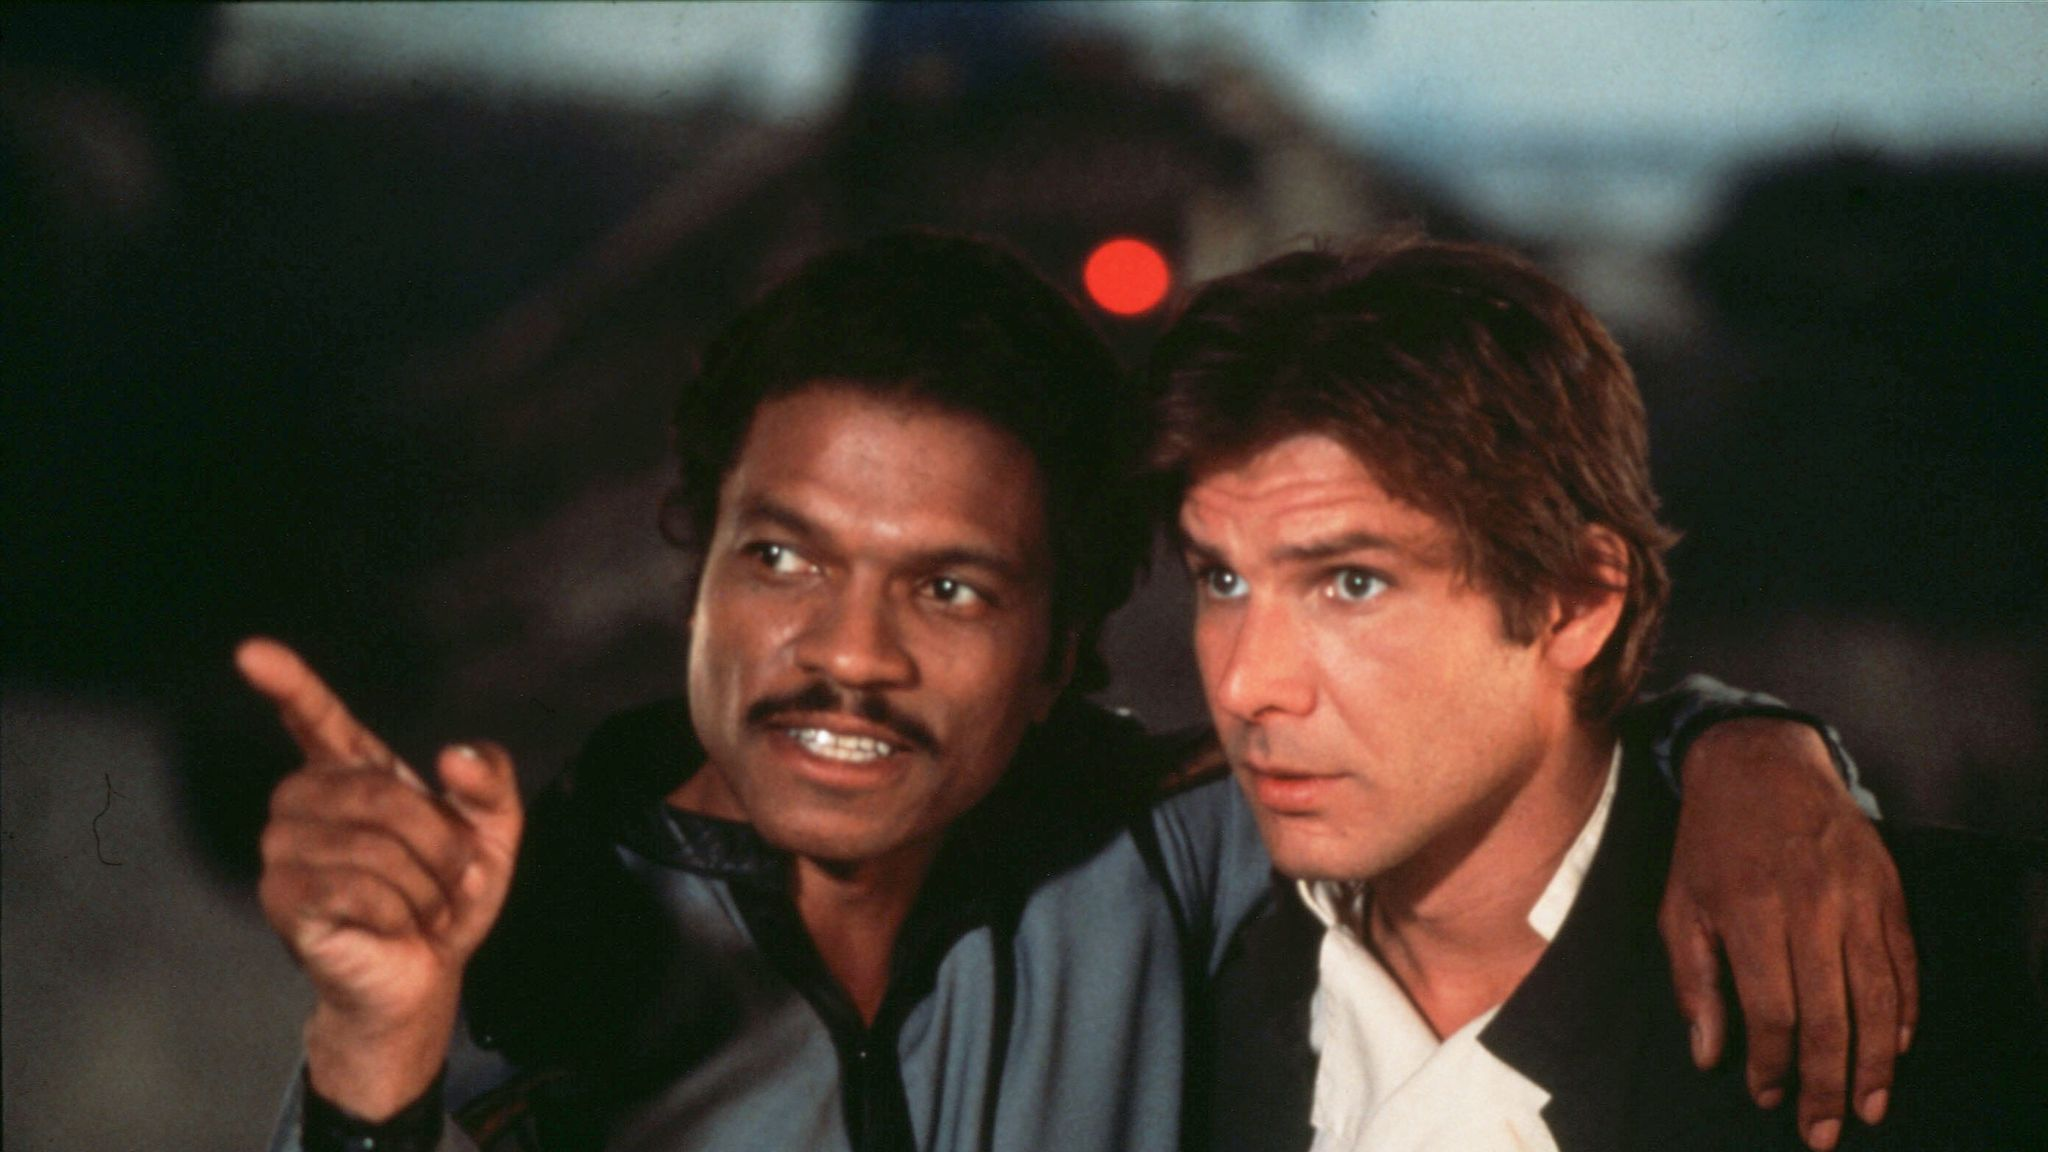 Billy Dee Williams: Star Wars actor who played Lando Calrissian reveals he is gender fluid | Ents & Arts News | Sky News